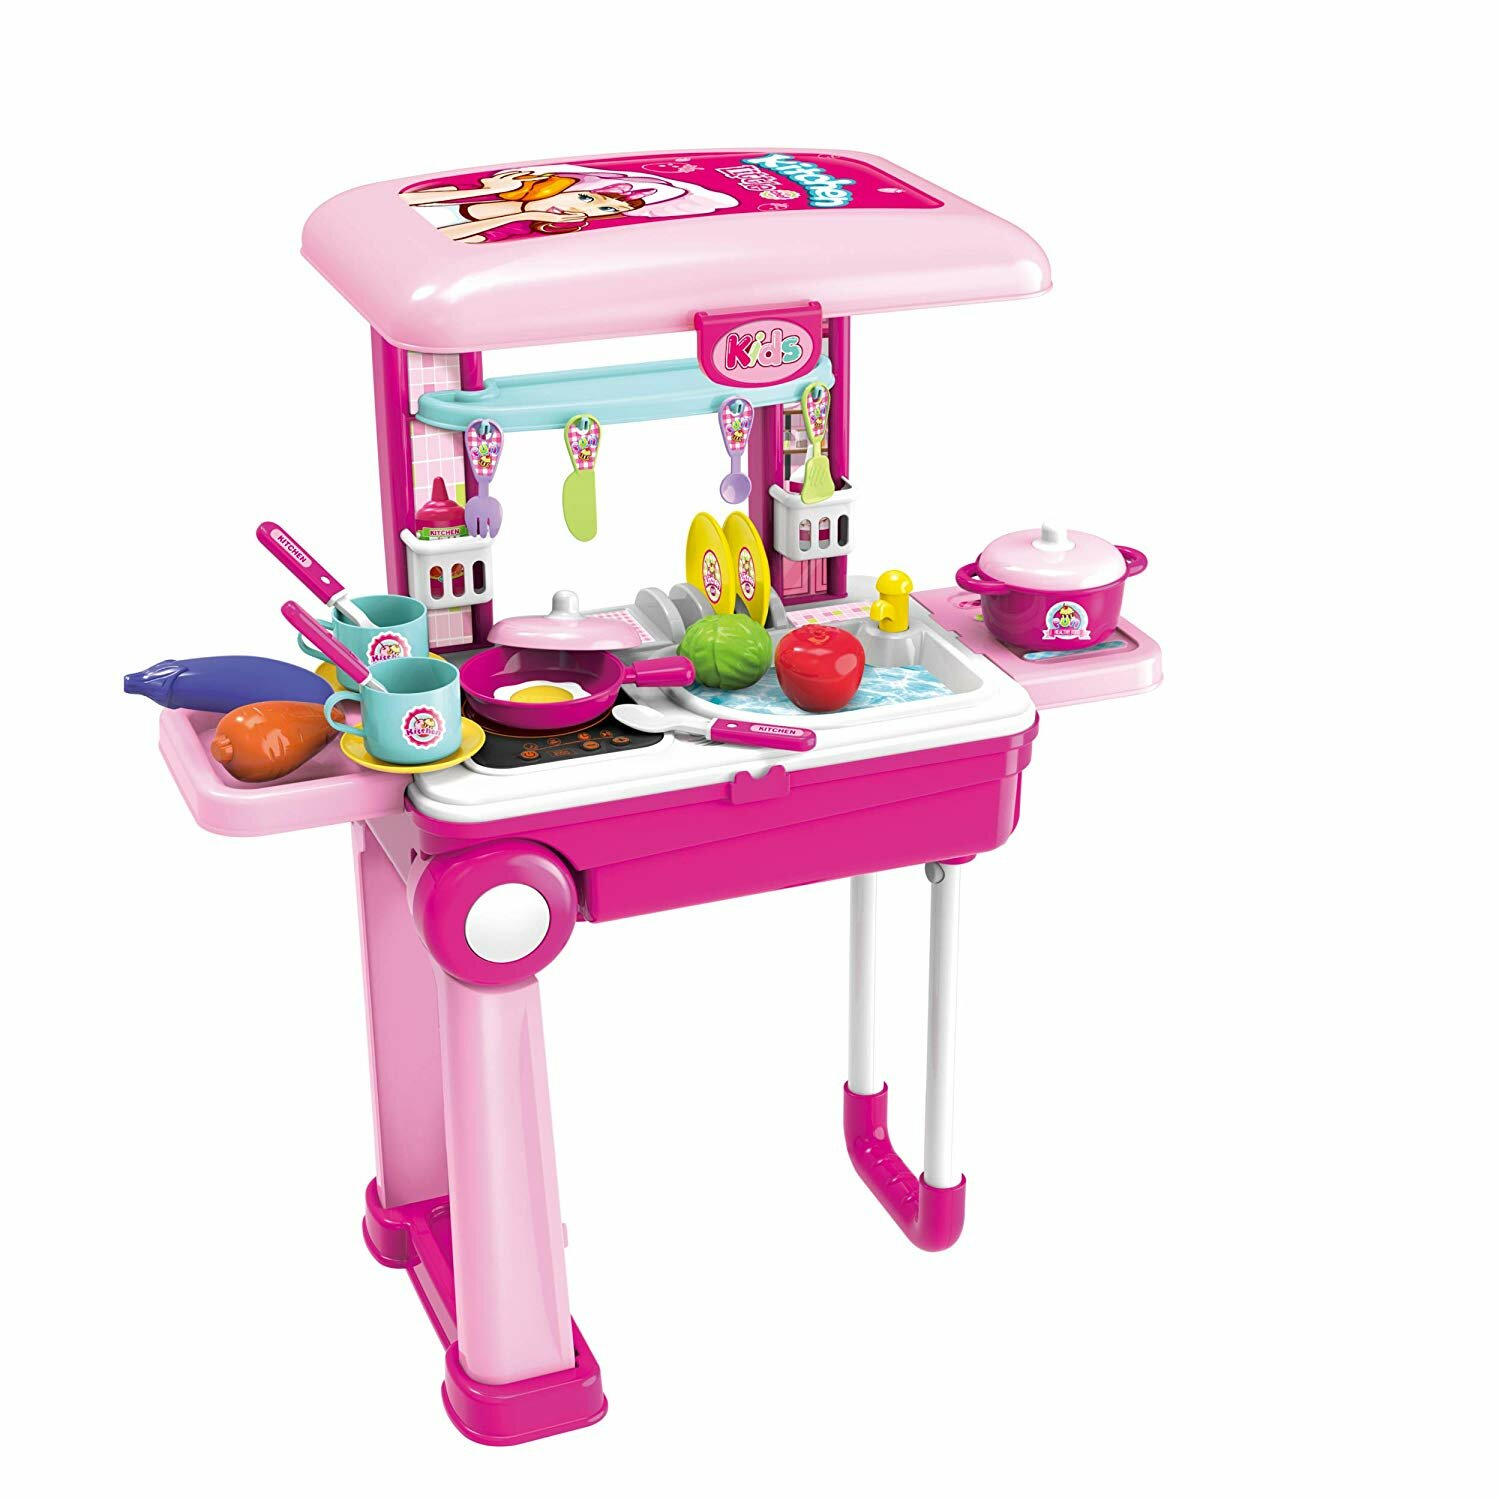 11 Piece 2-in-1 Children's Portable Kitchen Set